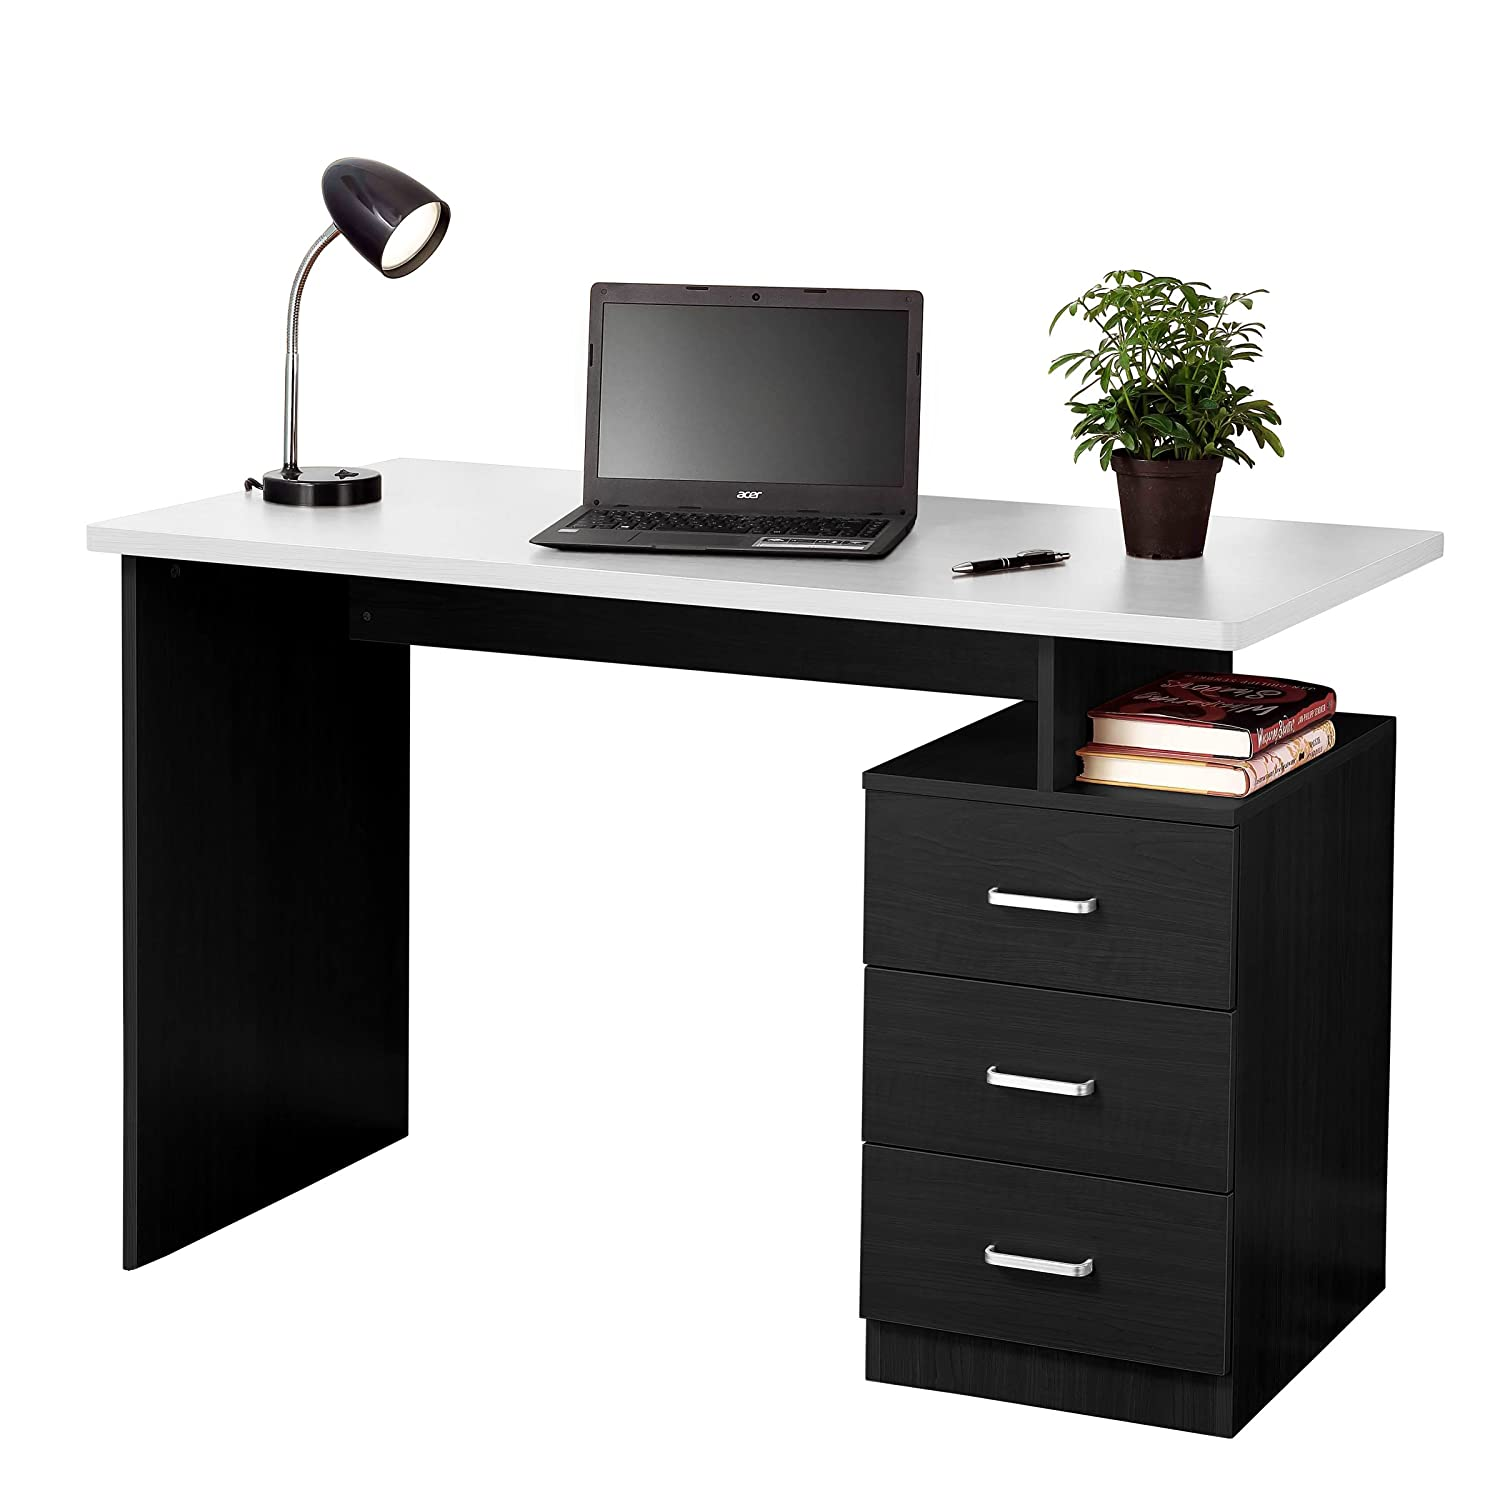 desk drawers ultramodern glass dining computer amazon with white com drawer onespace dp kitchen